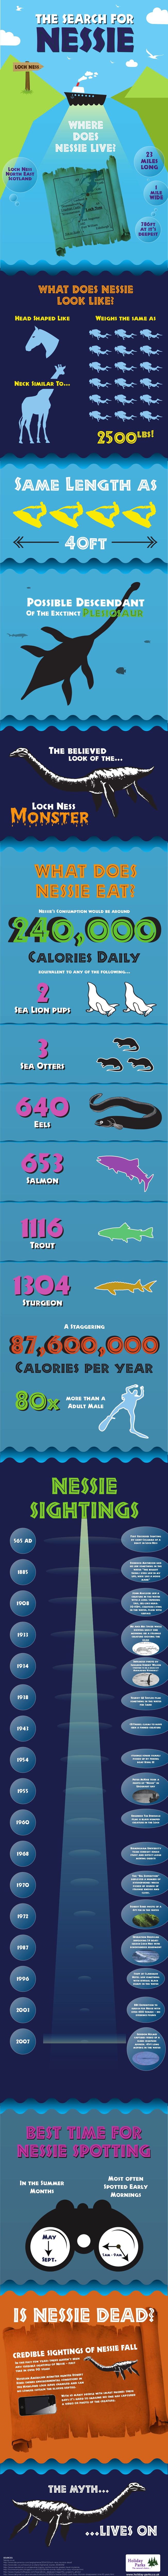 The Search For Nessie, The Loch Ness Monster Infographic